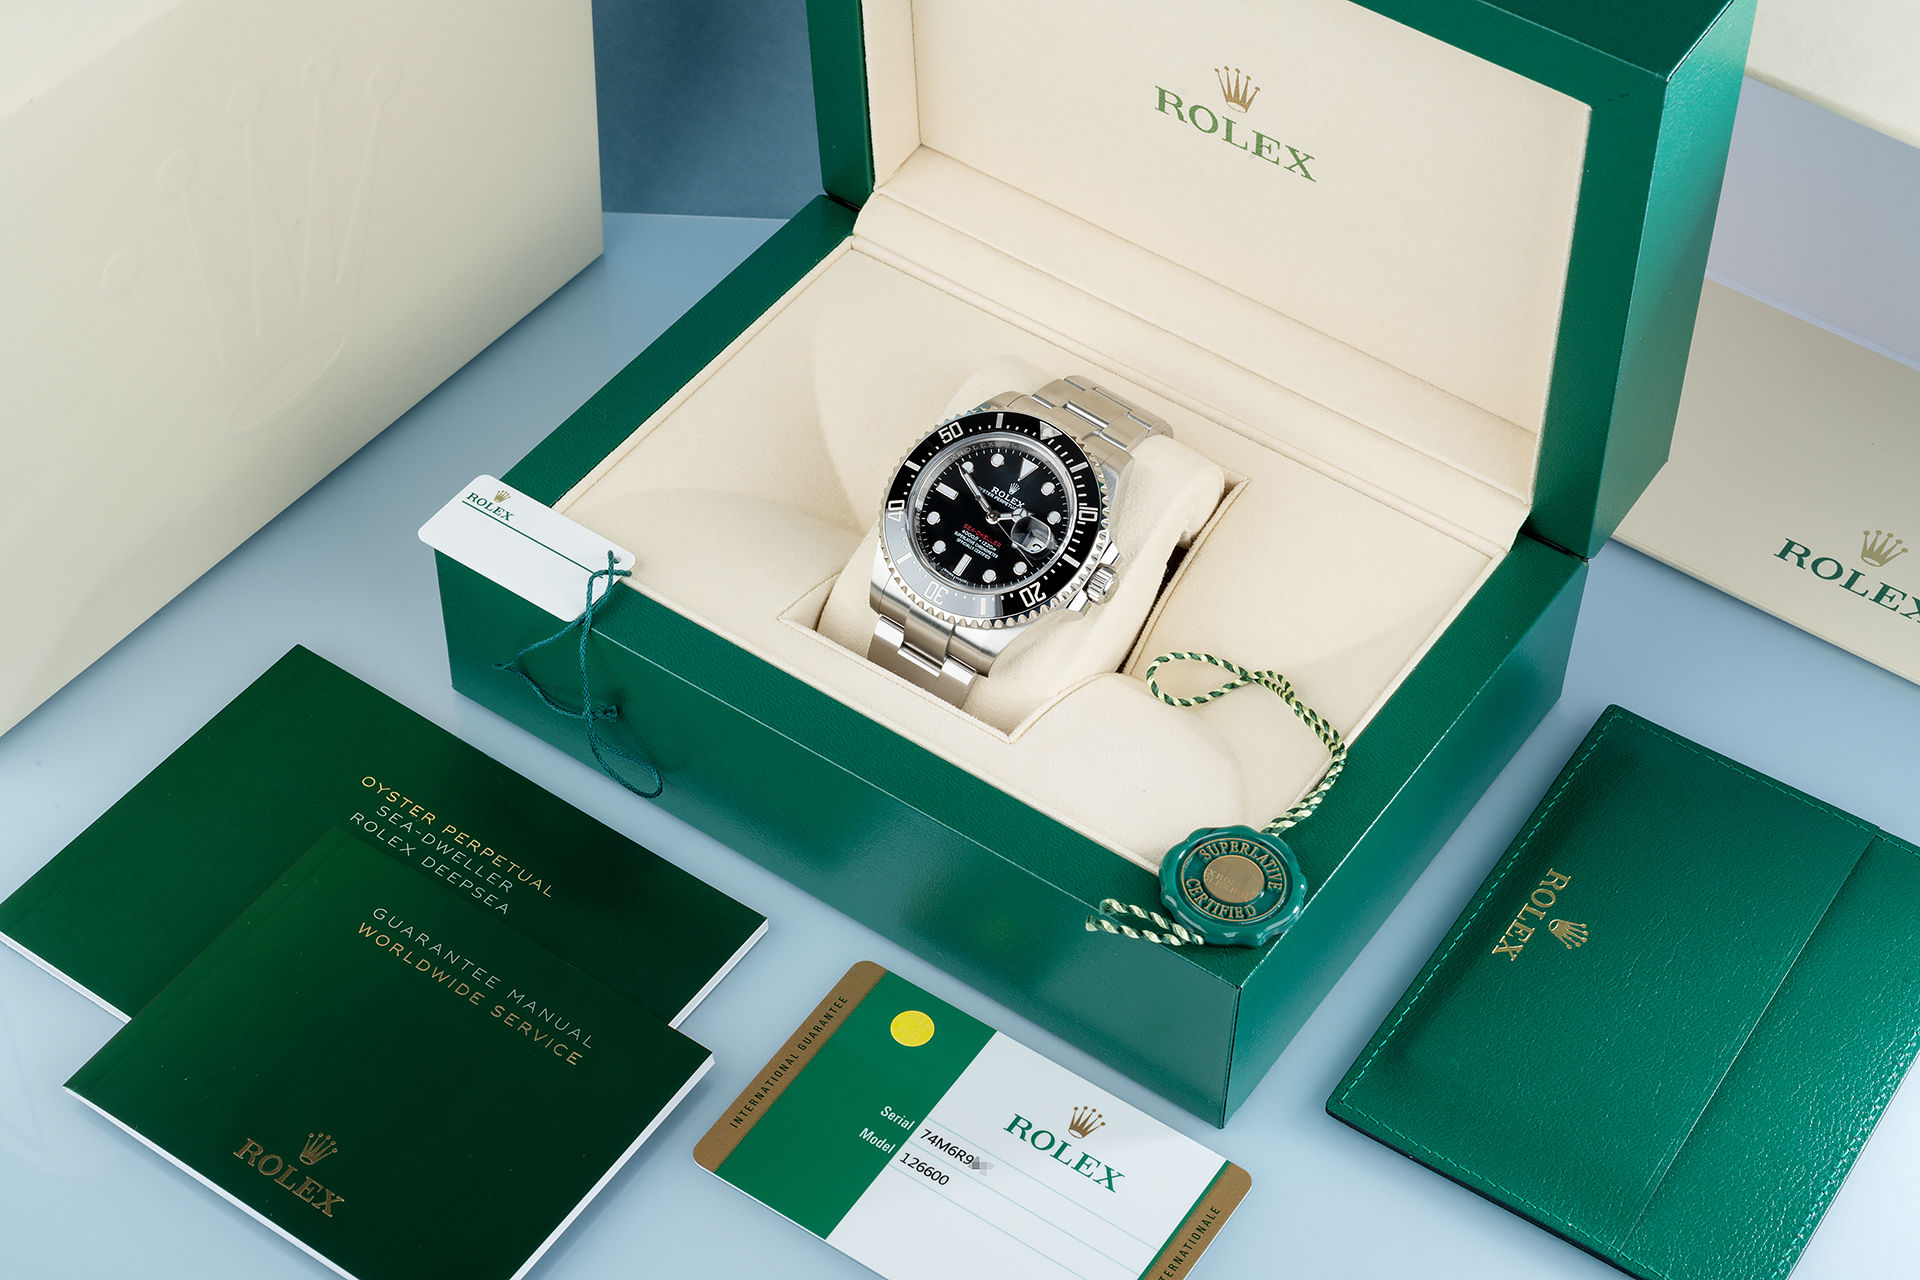 ref 126600 | Anniversary Model 'Full Set' | Rolex Sea-Dweller